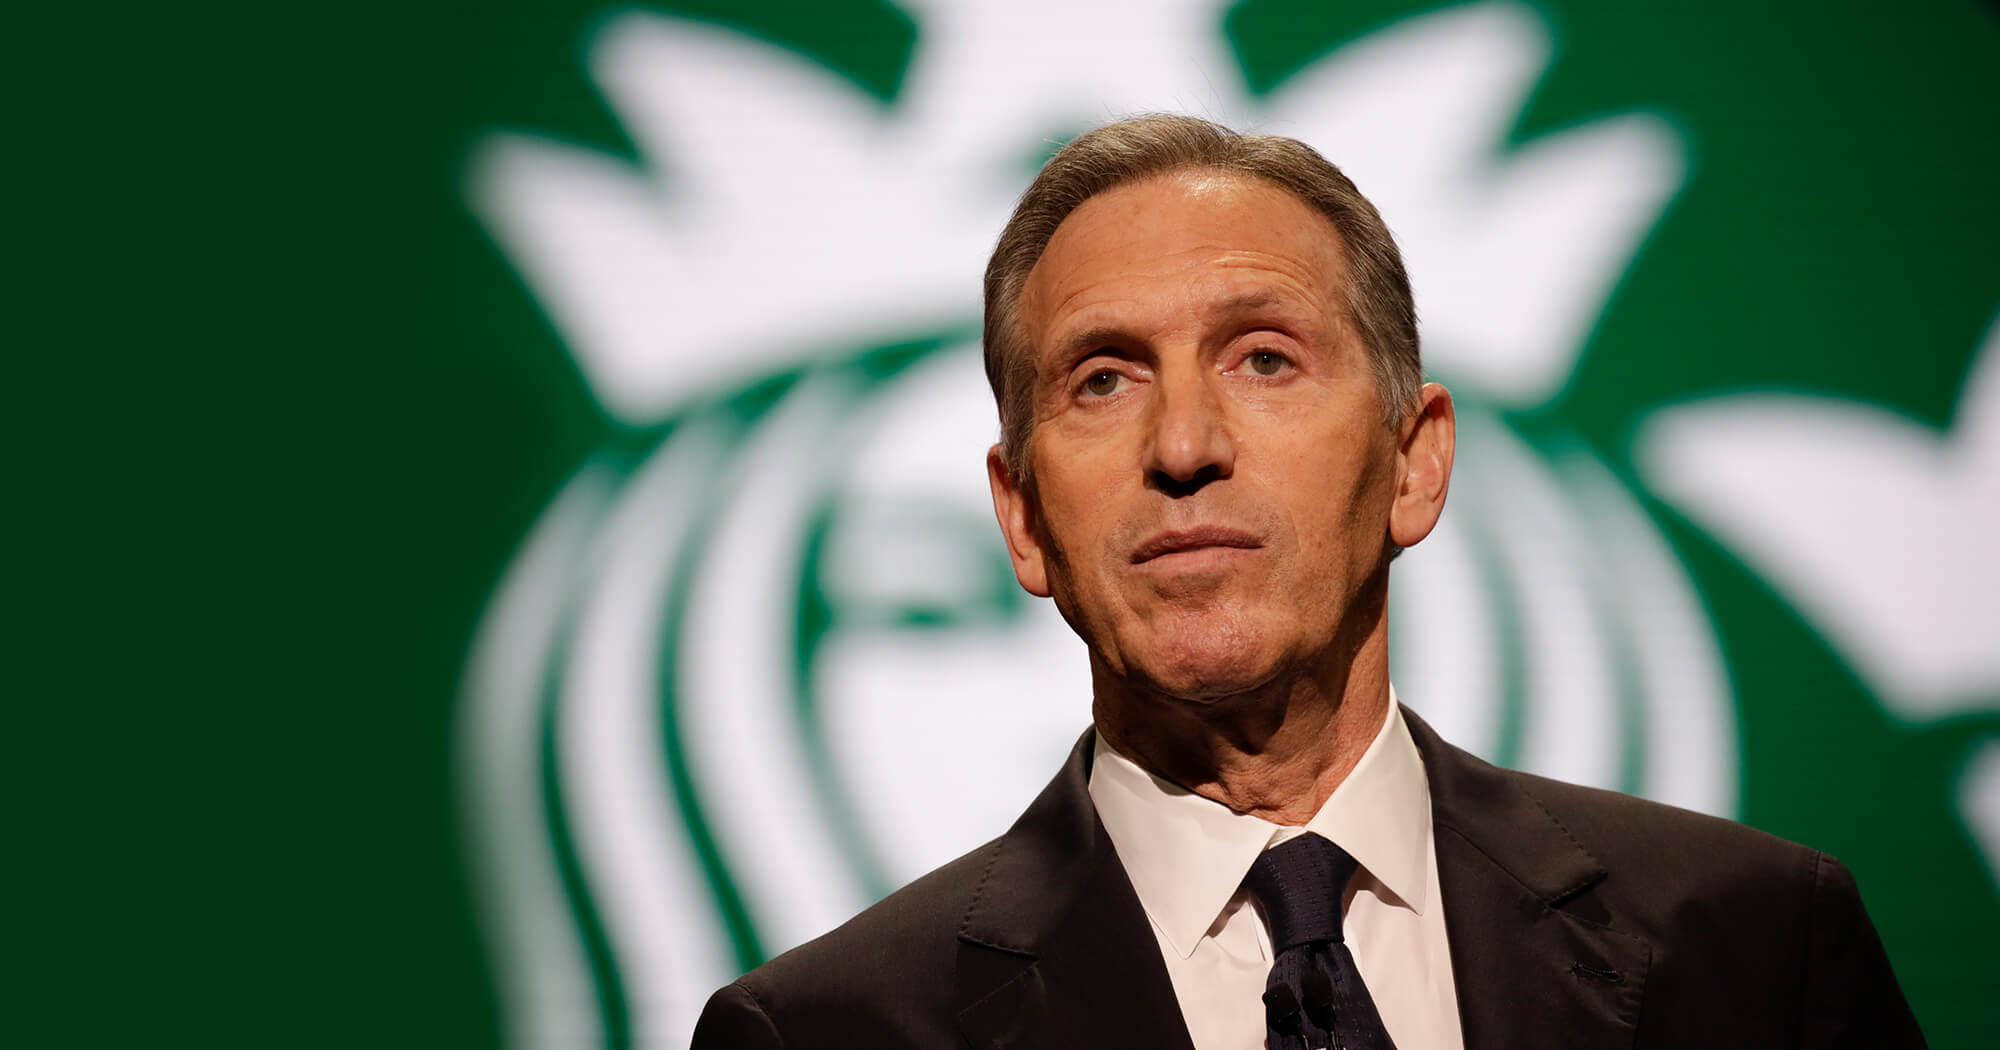 Starbucks Chairman Sees Blockchain in the Near Future